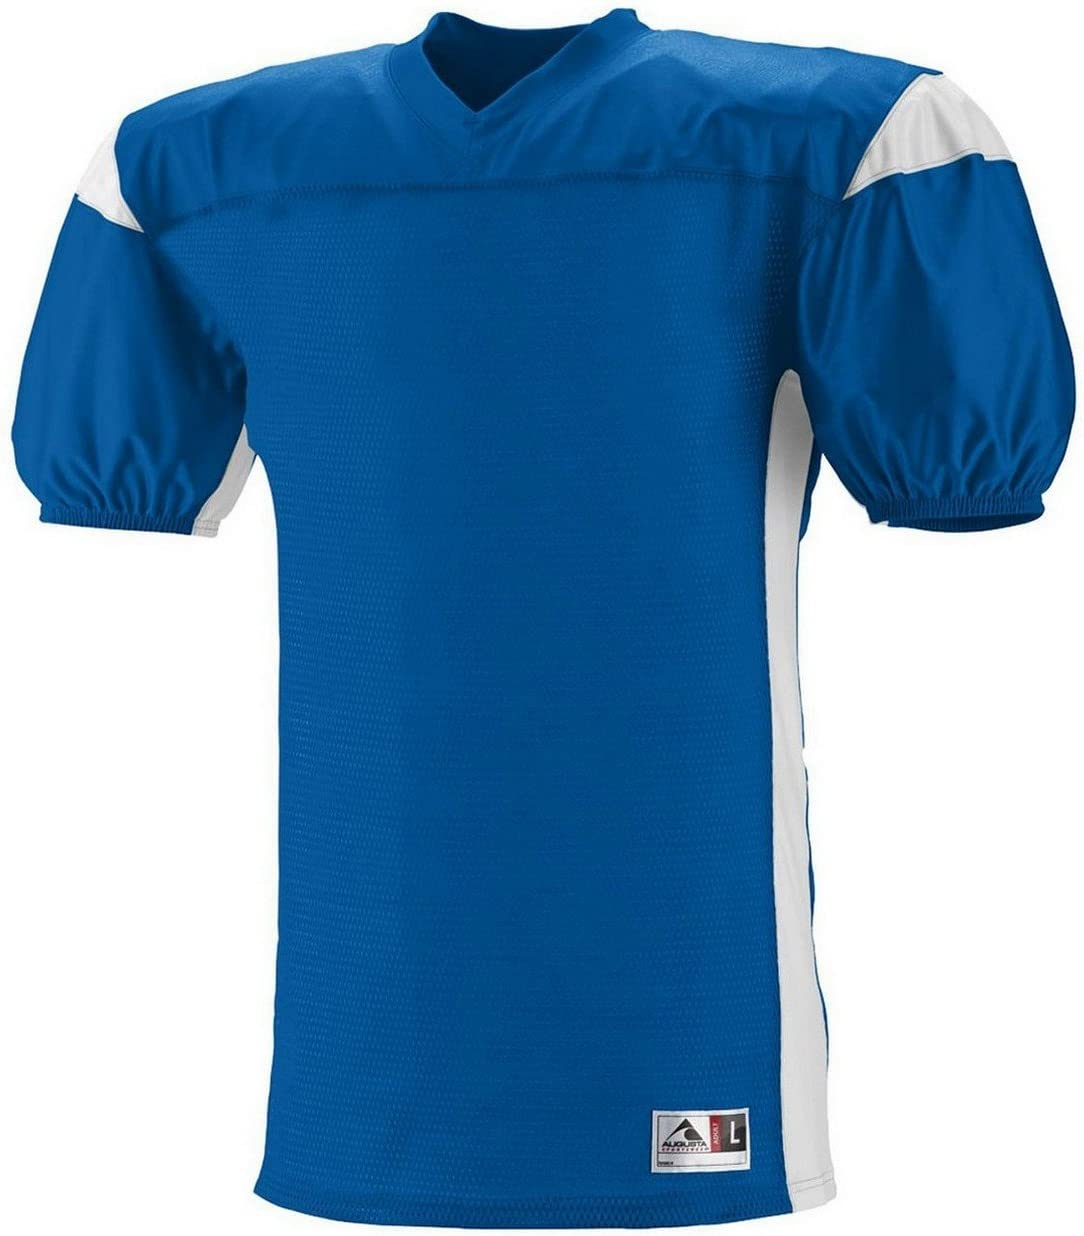 9521 AG YTH DOMINATOR MESH JERSEY ROYAL/ WHITE XL